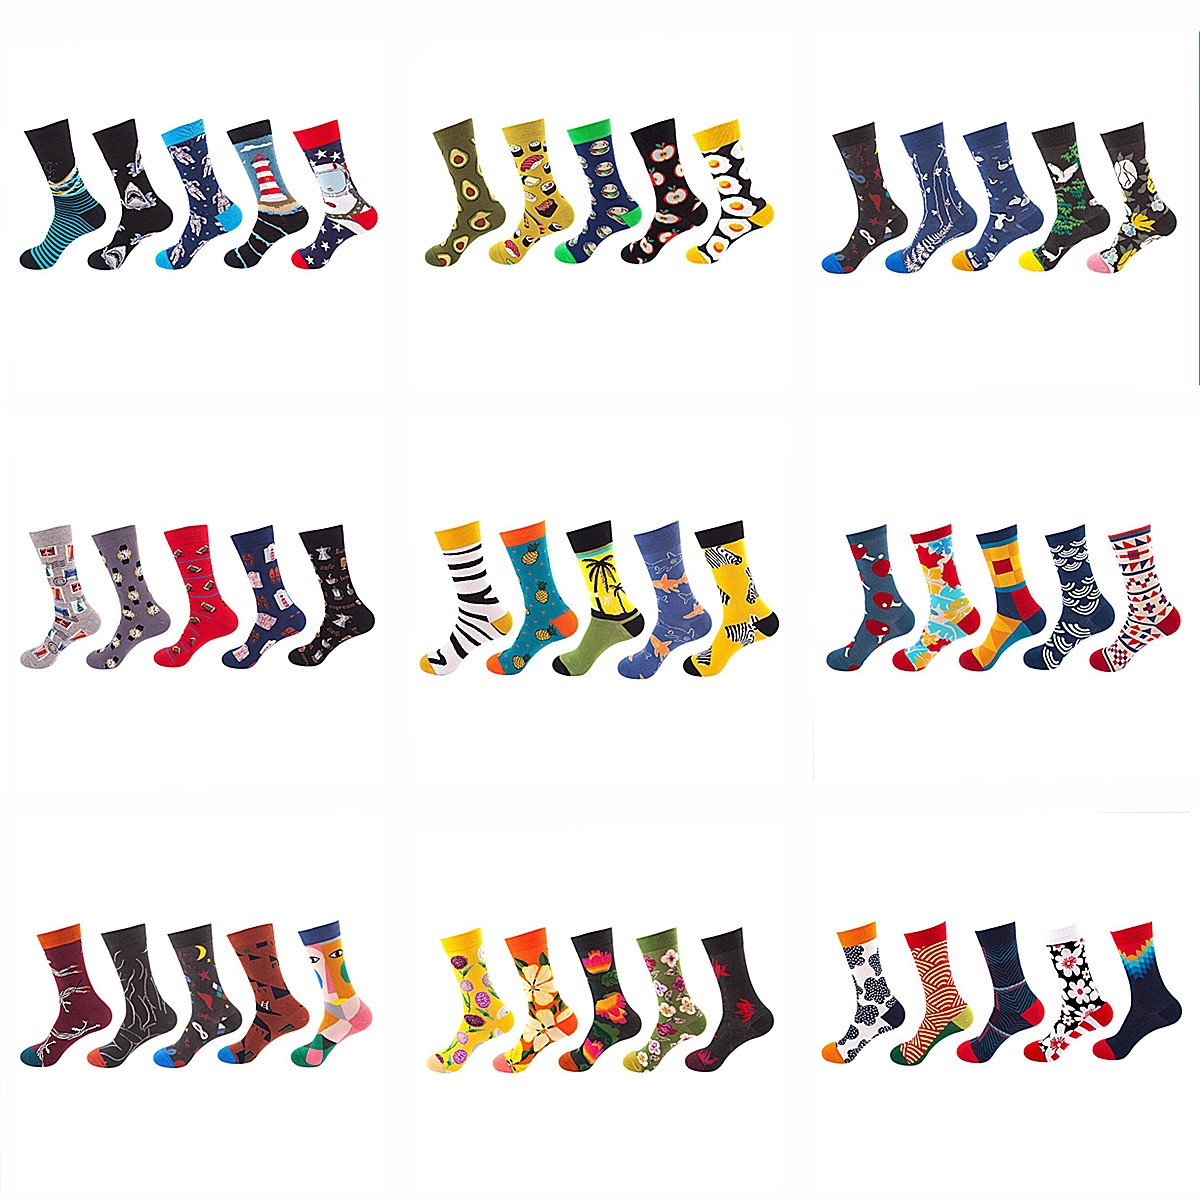 Combed Cotton Men Fashion Trend Crew Socks Funny Shark Plant Animal Art Man Novelty Long Socks Happy Woman Cartoon Socks